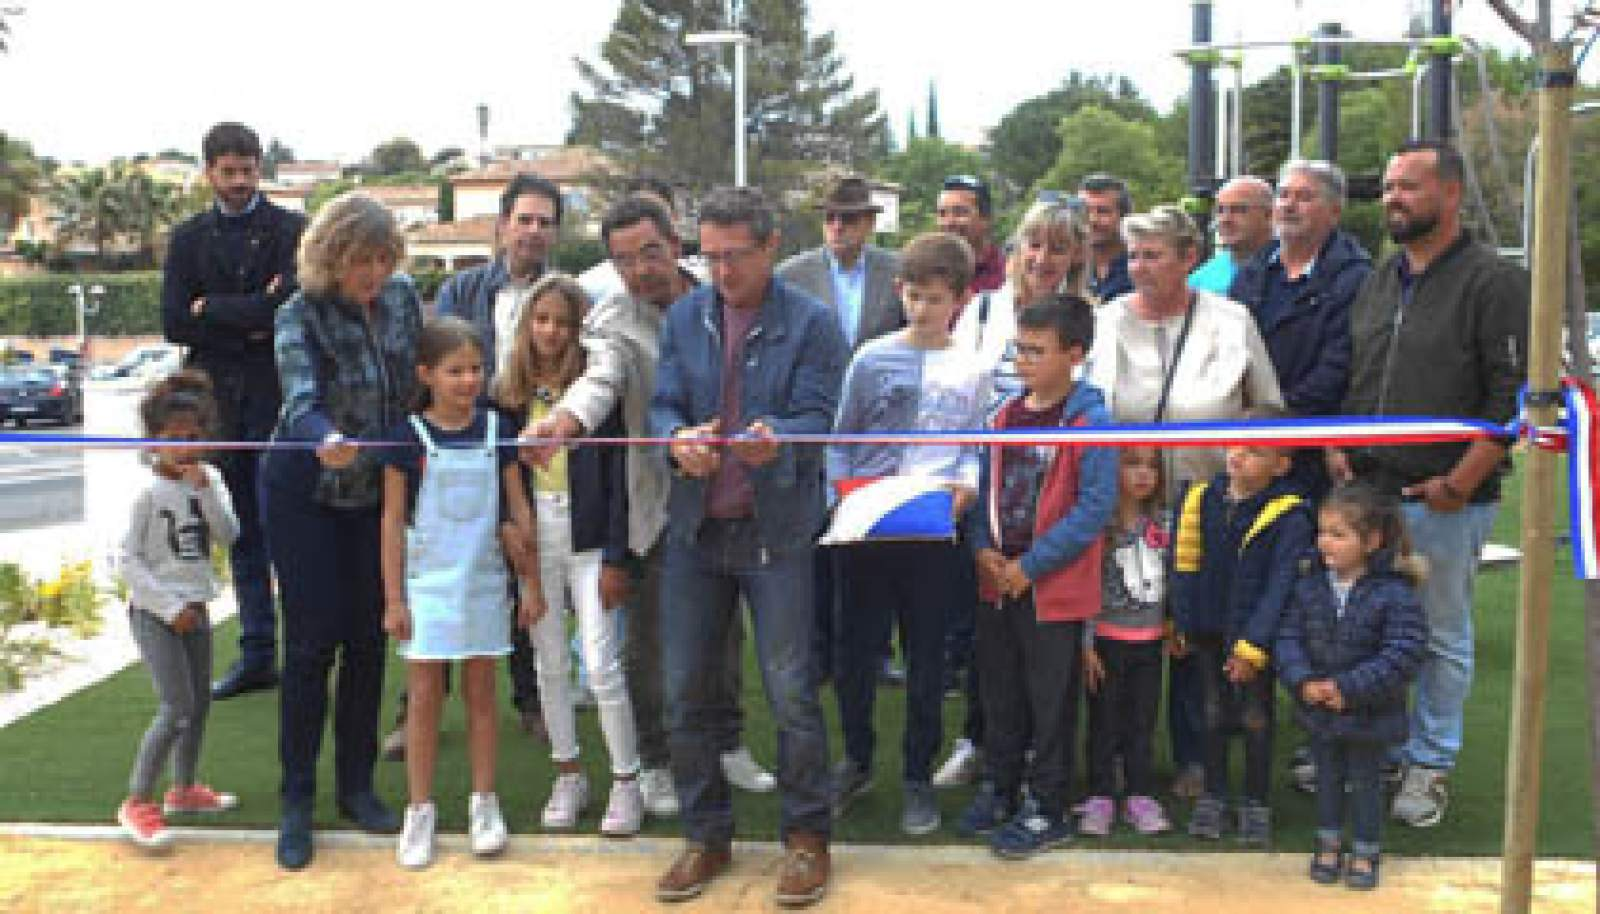 2019 05 25 inauguration Jean Moulin